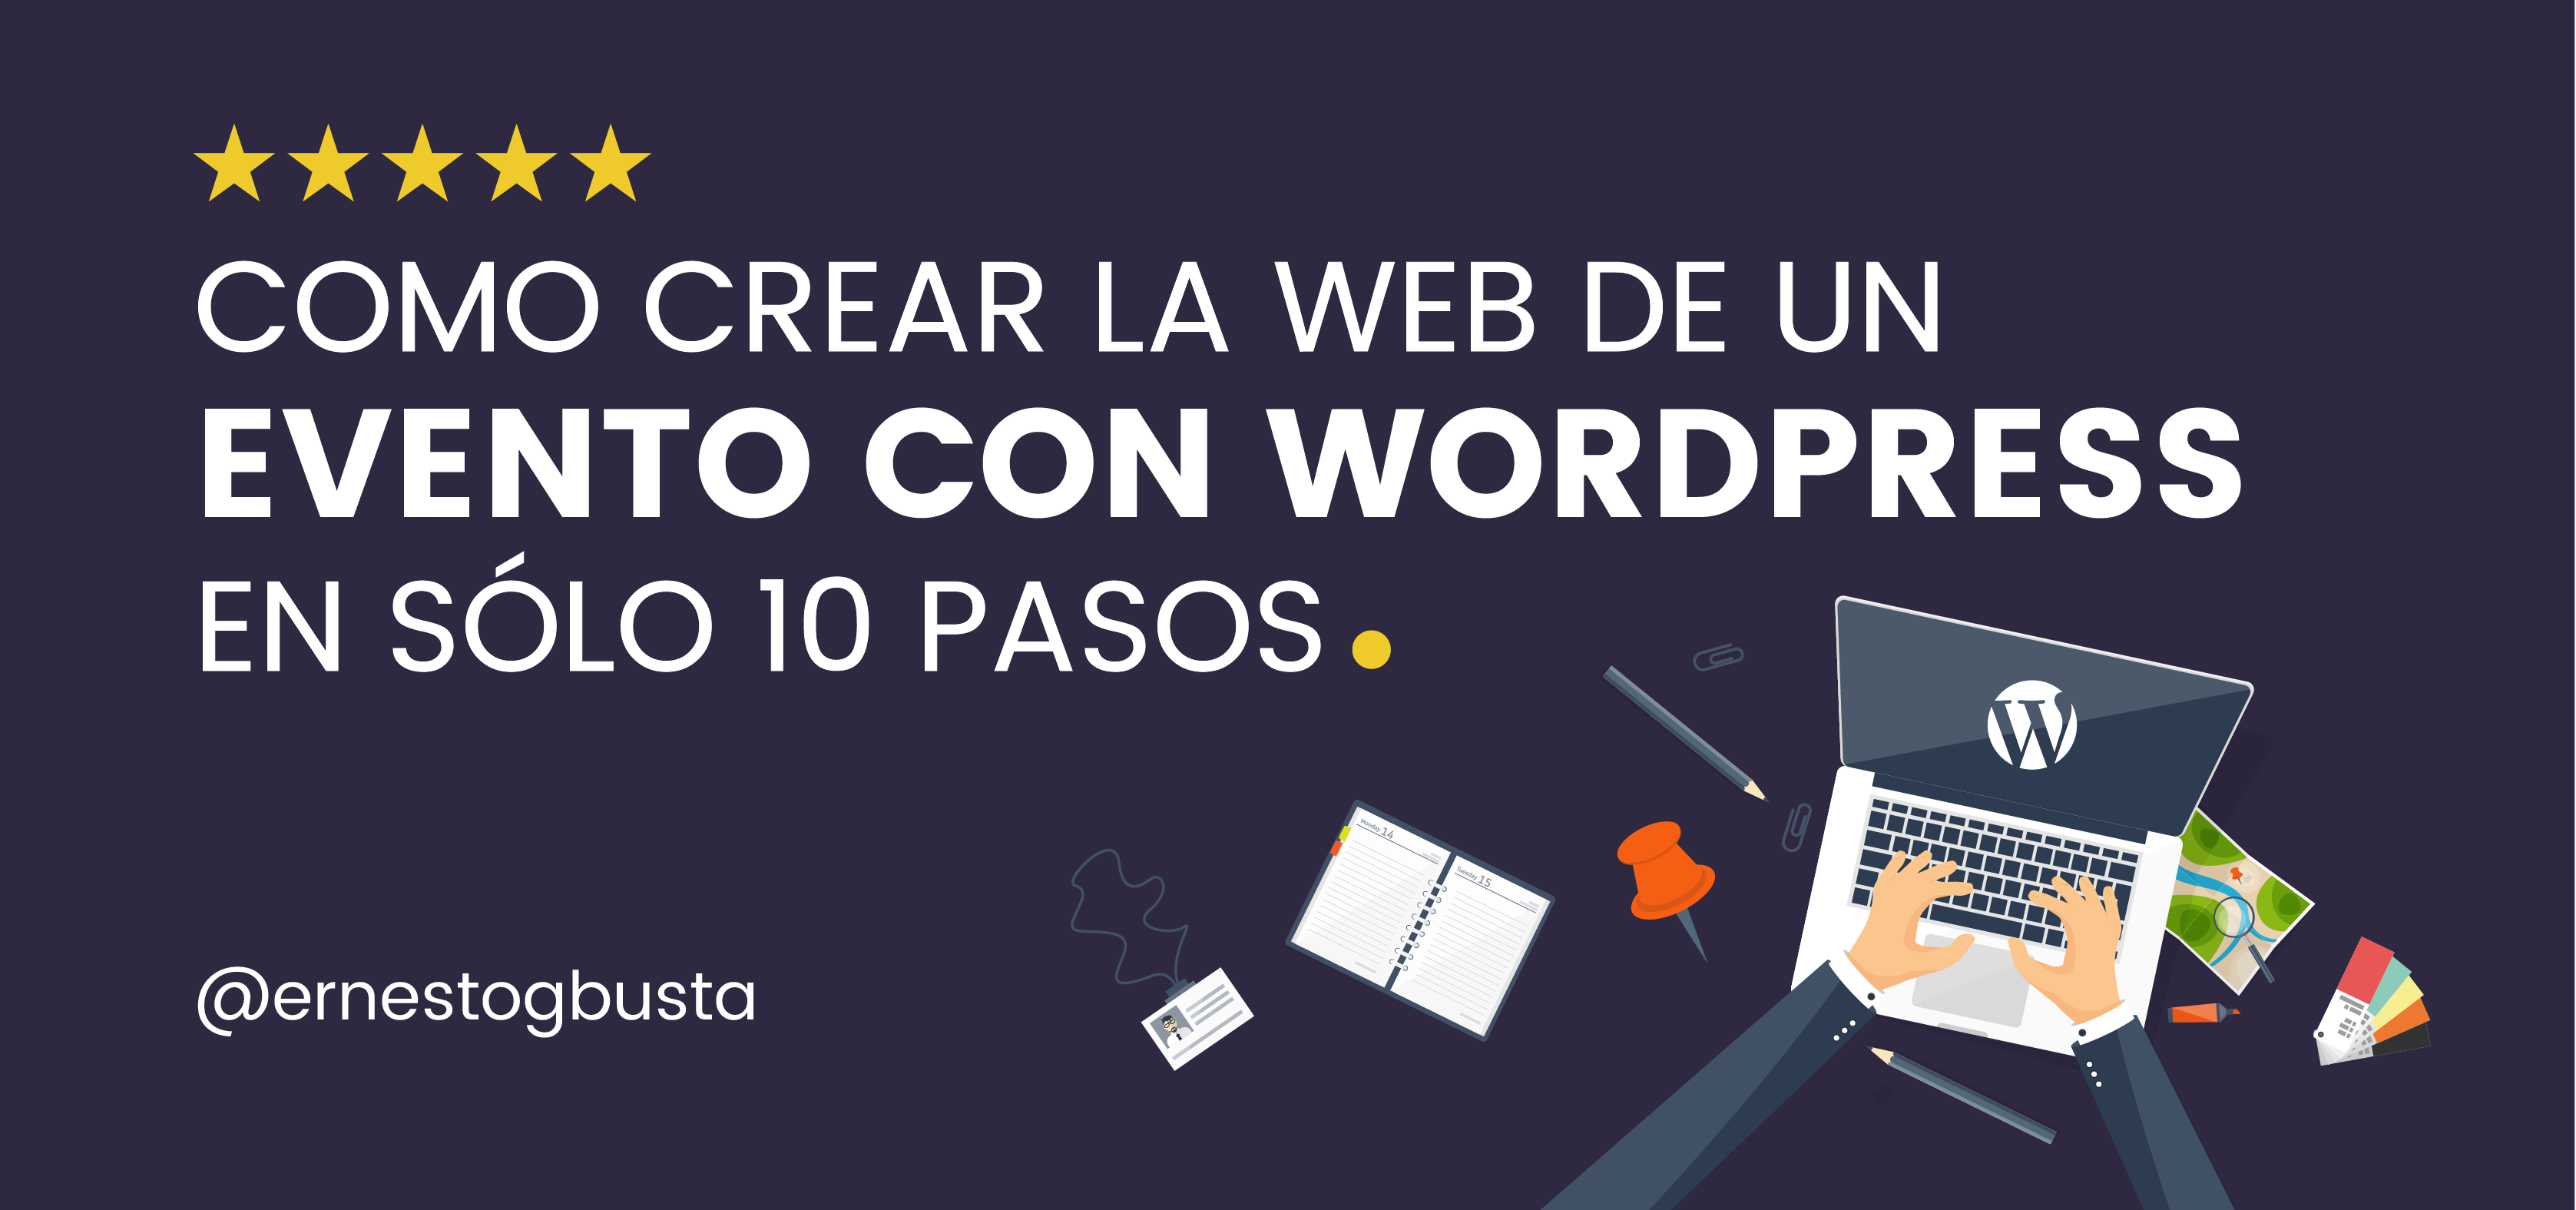 crear web evento wordpress